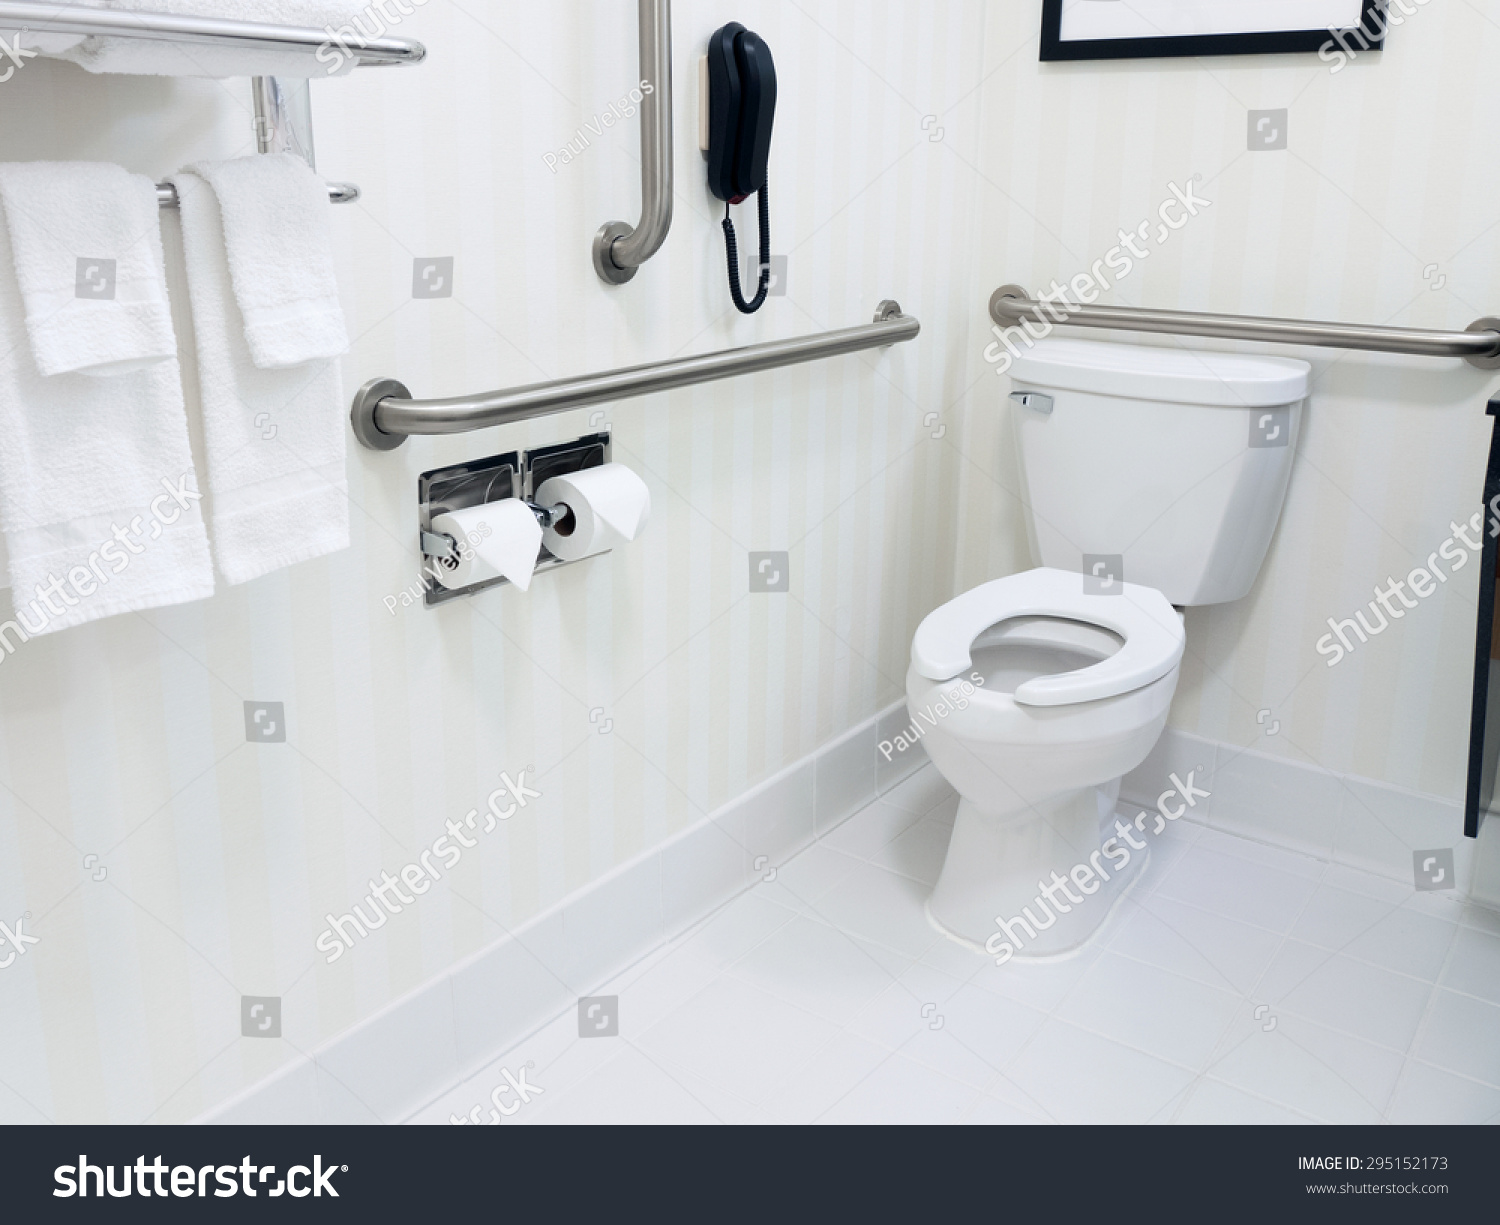 Handicapped Access Bathroom Grab Bars Toilet Stock Photo (Edit Now ...